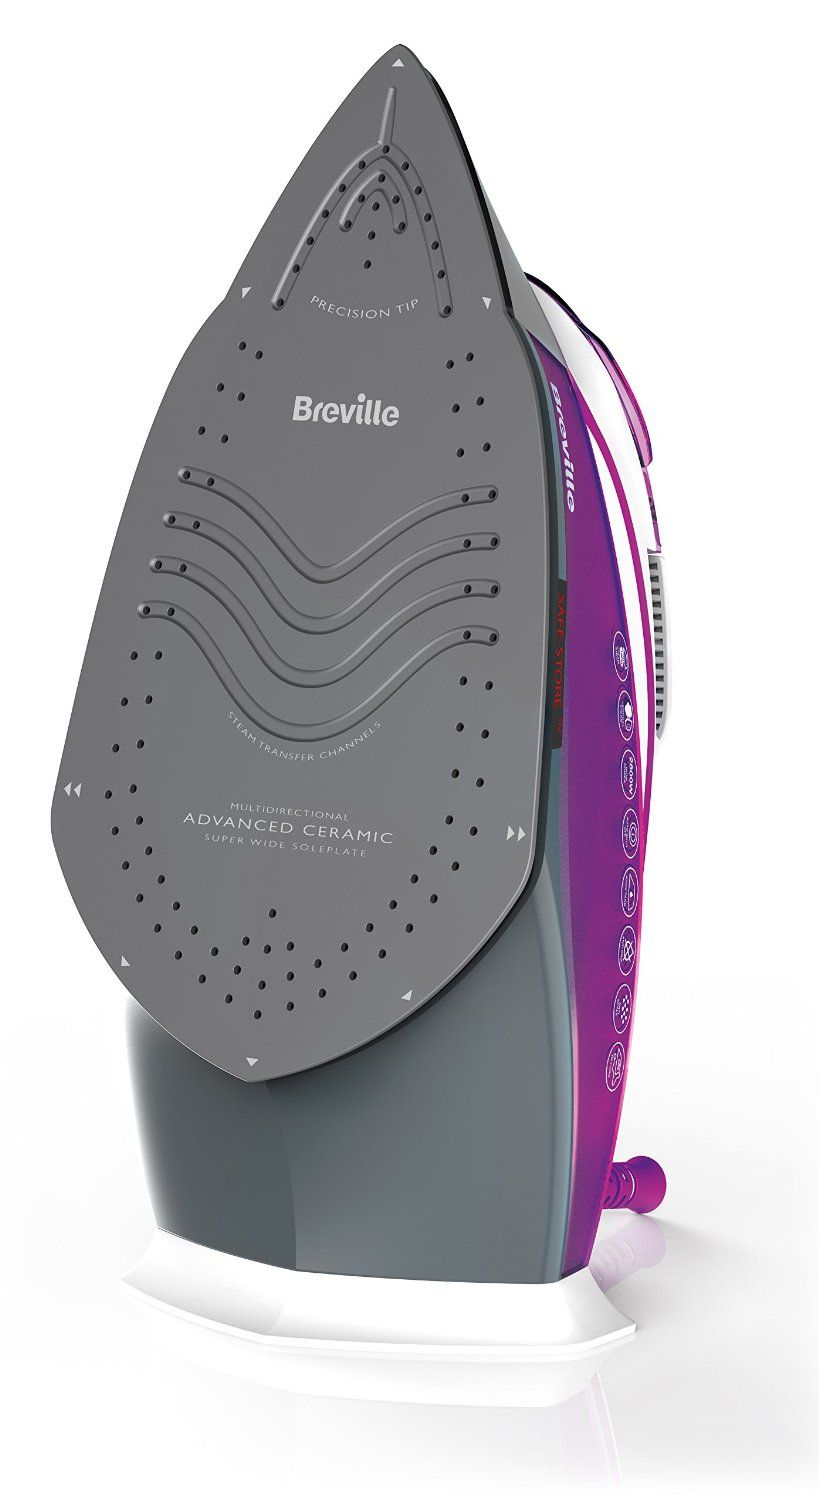 Breville Press Xpress Steam Iron Review – Royalirons.co.uk http://royalirons.co.uk/breville-press-xpress-steam-iron-review/